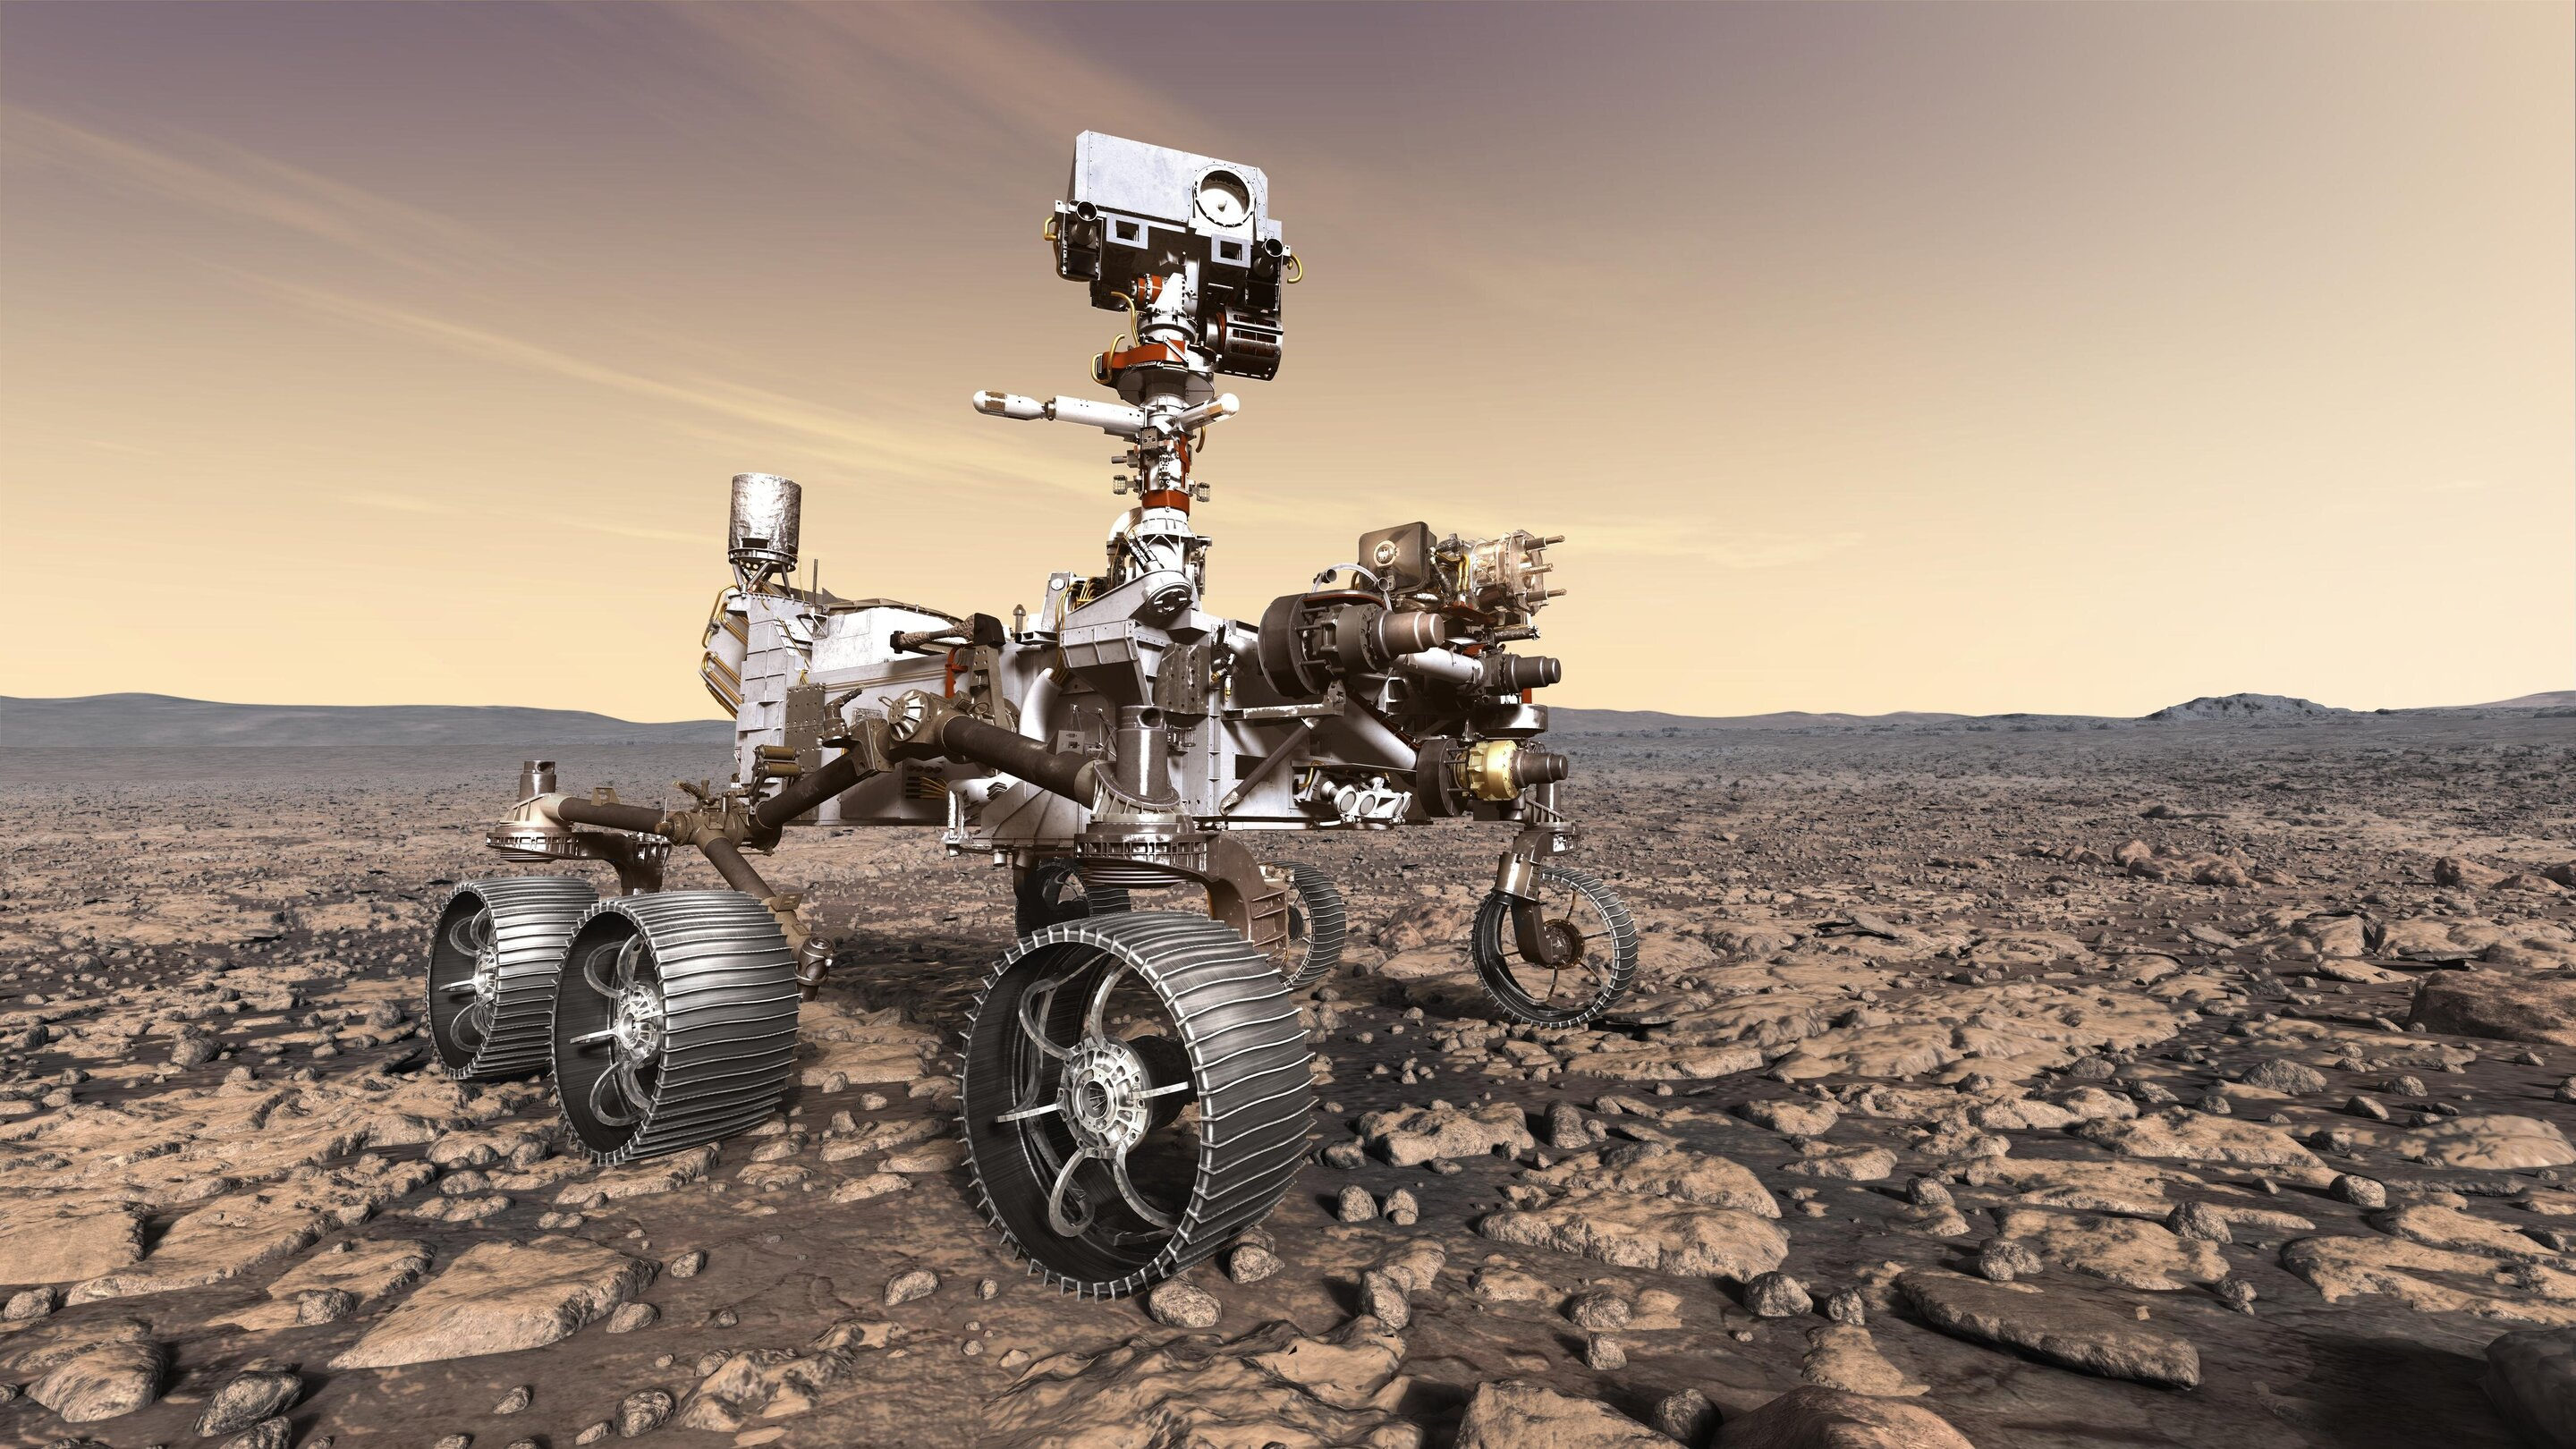 Mars is getting a new robotic meteorologist